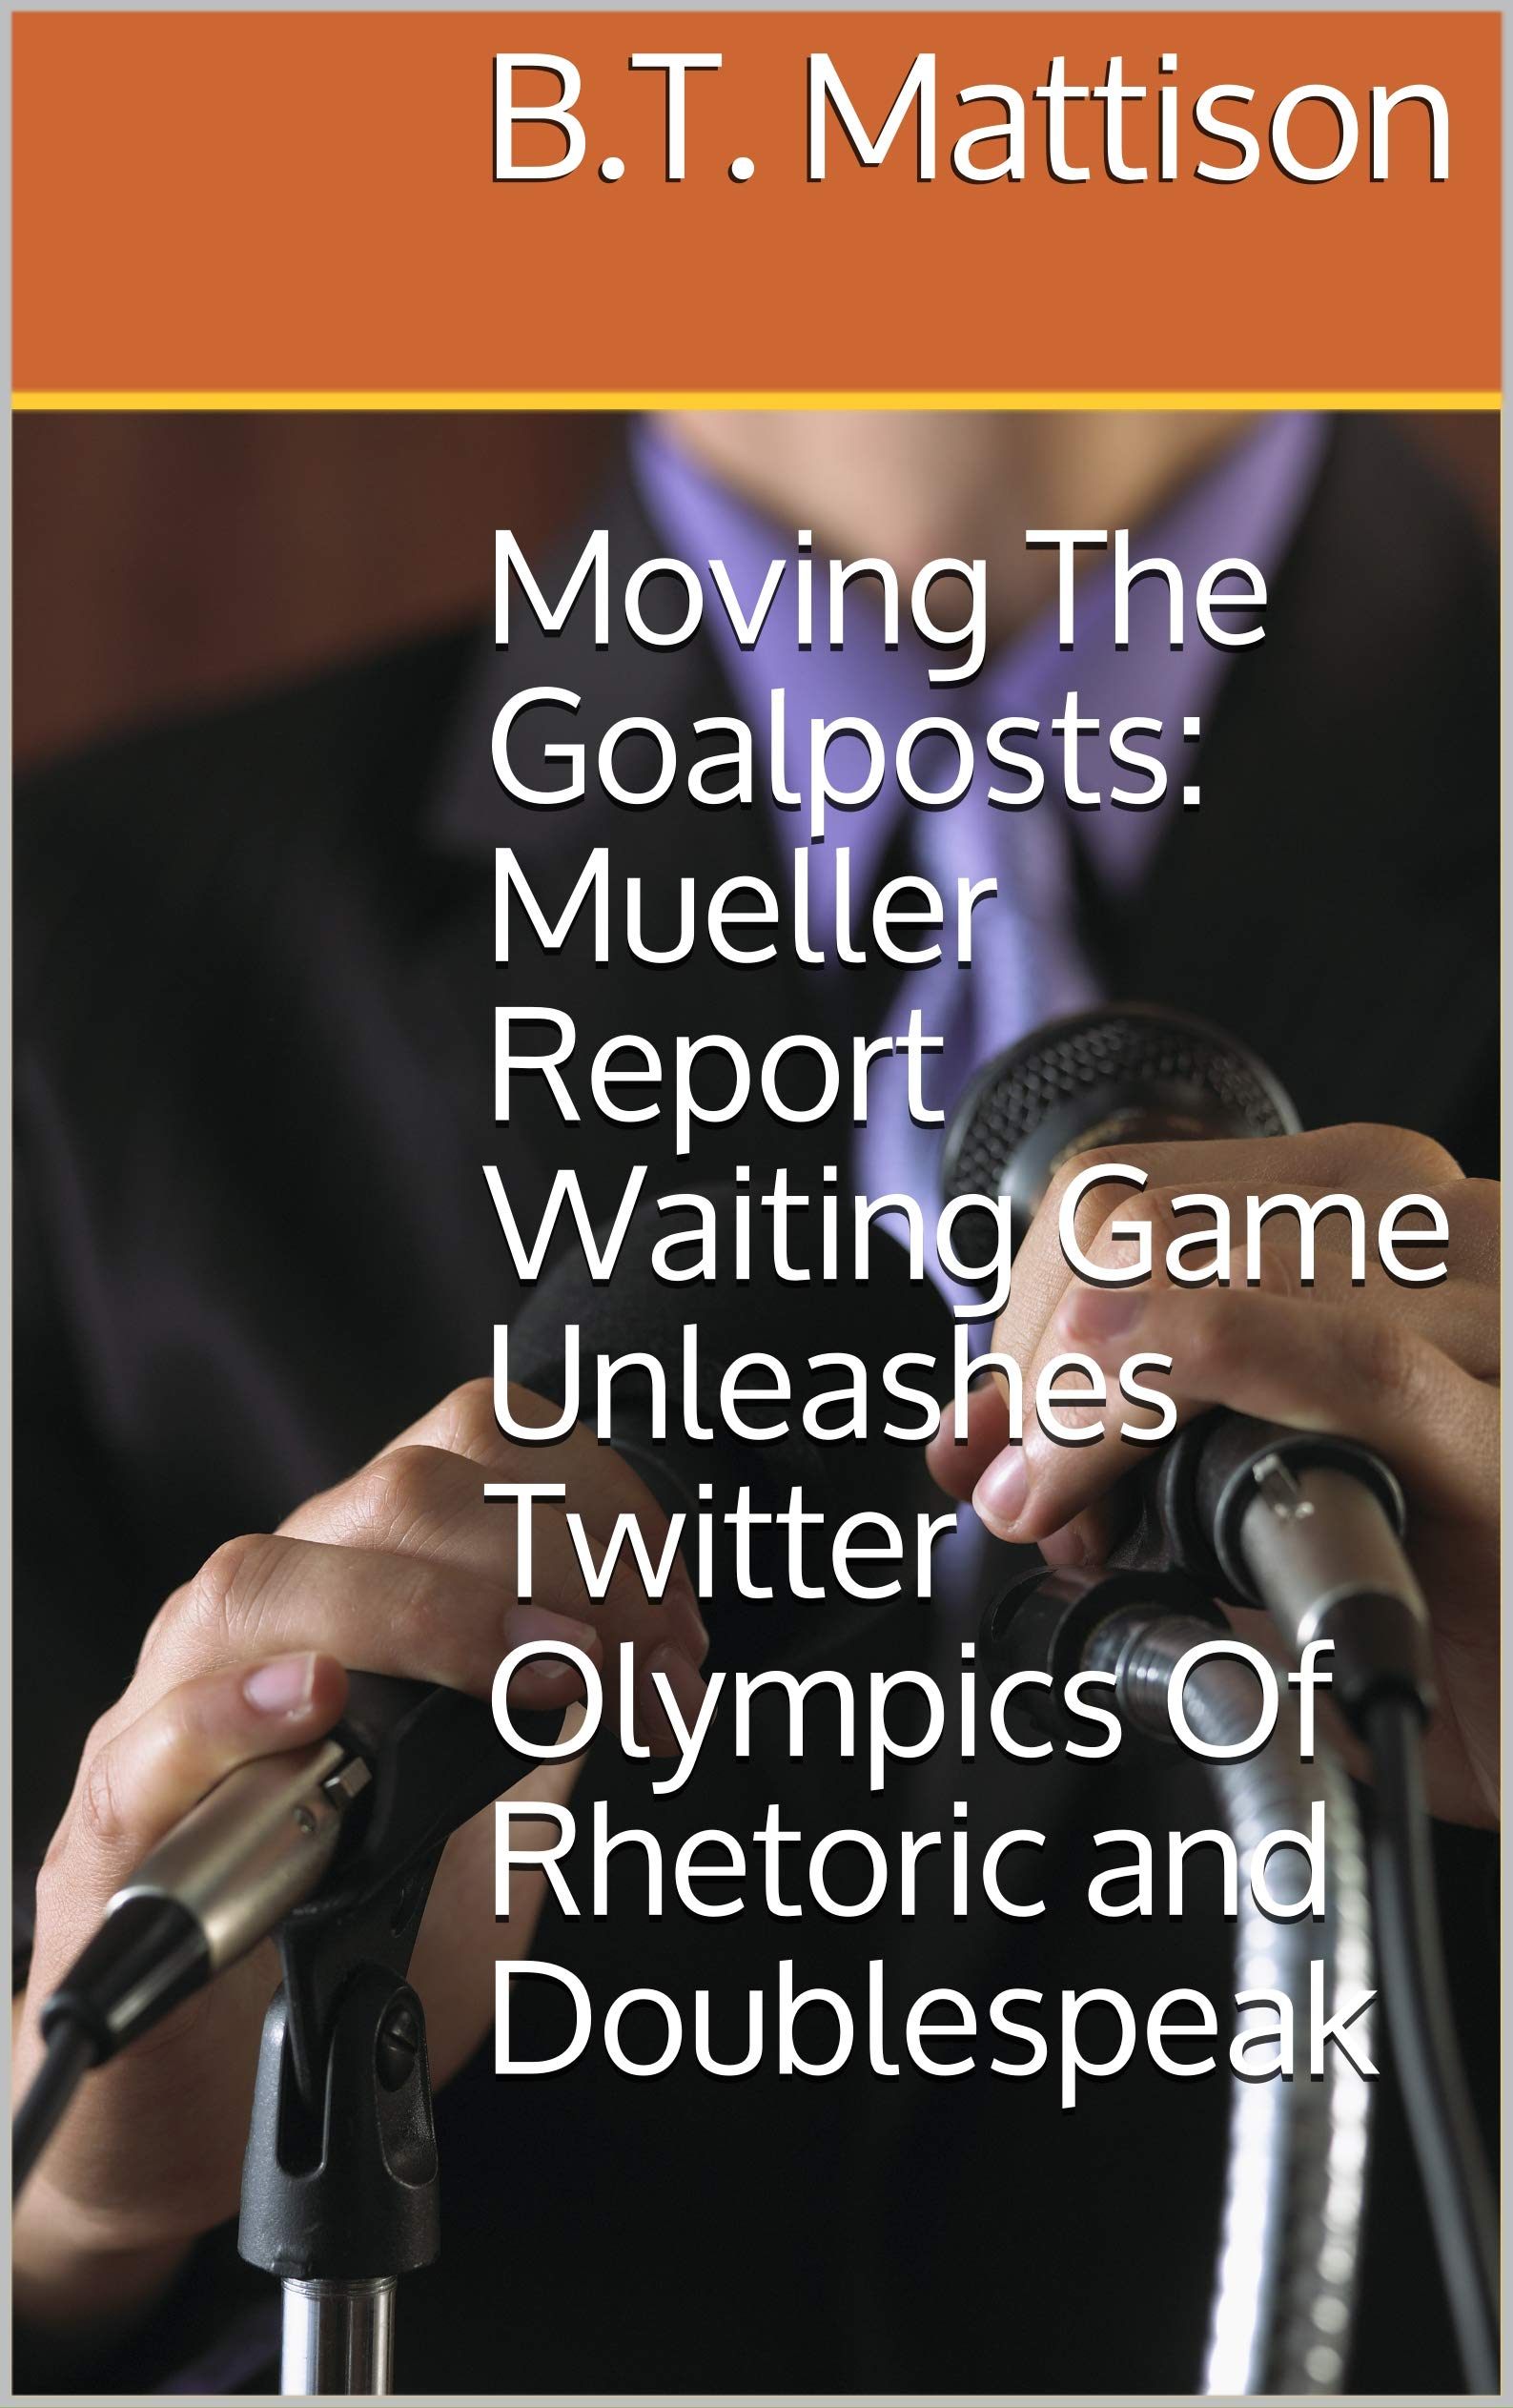 Moving The Goalposts: Mueller Report Waiting Game Unleashes Twitter Olympics Of Rhetoric and Doublespeak